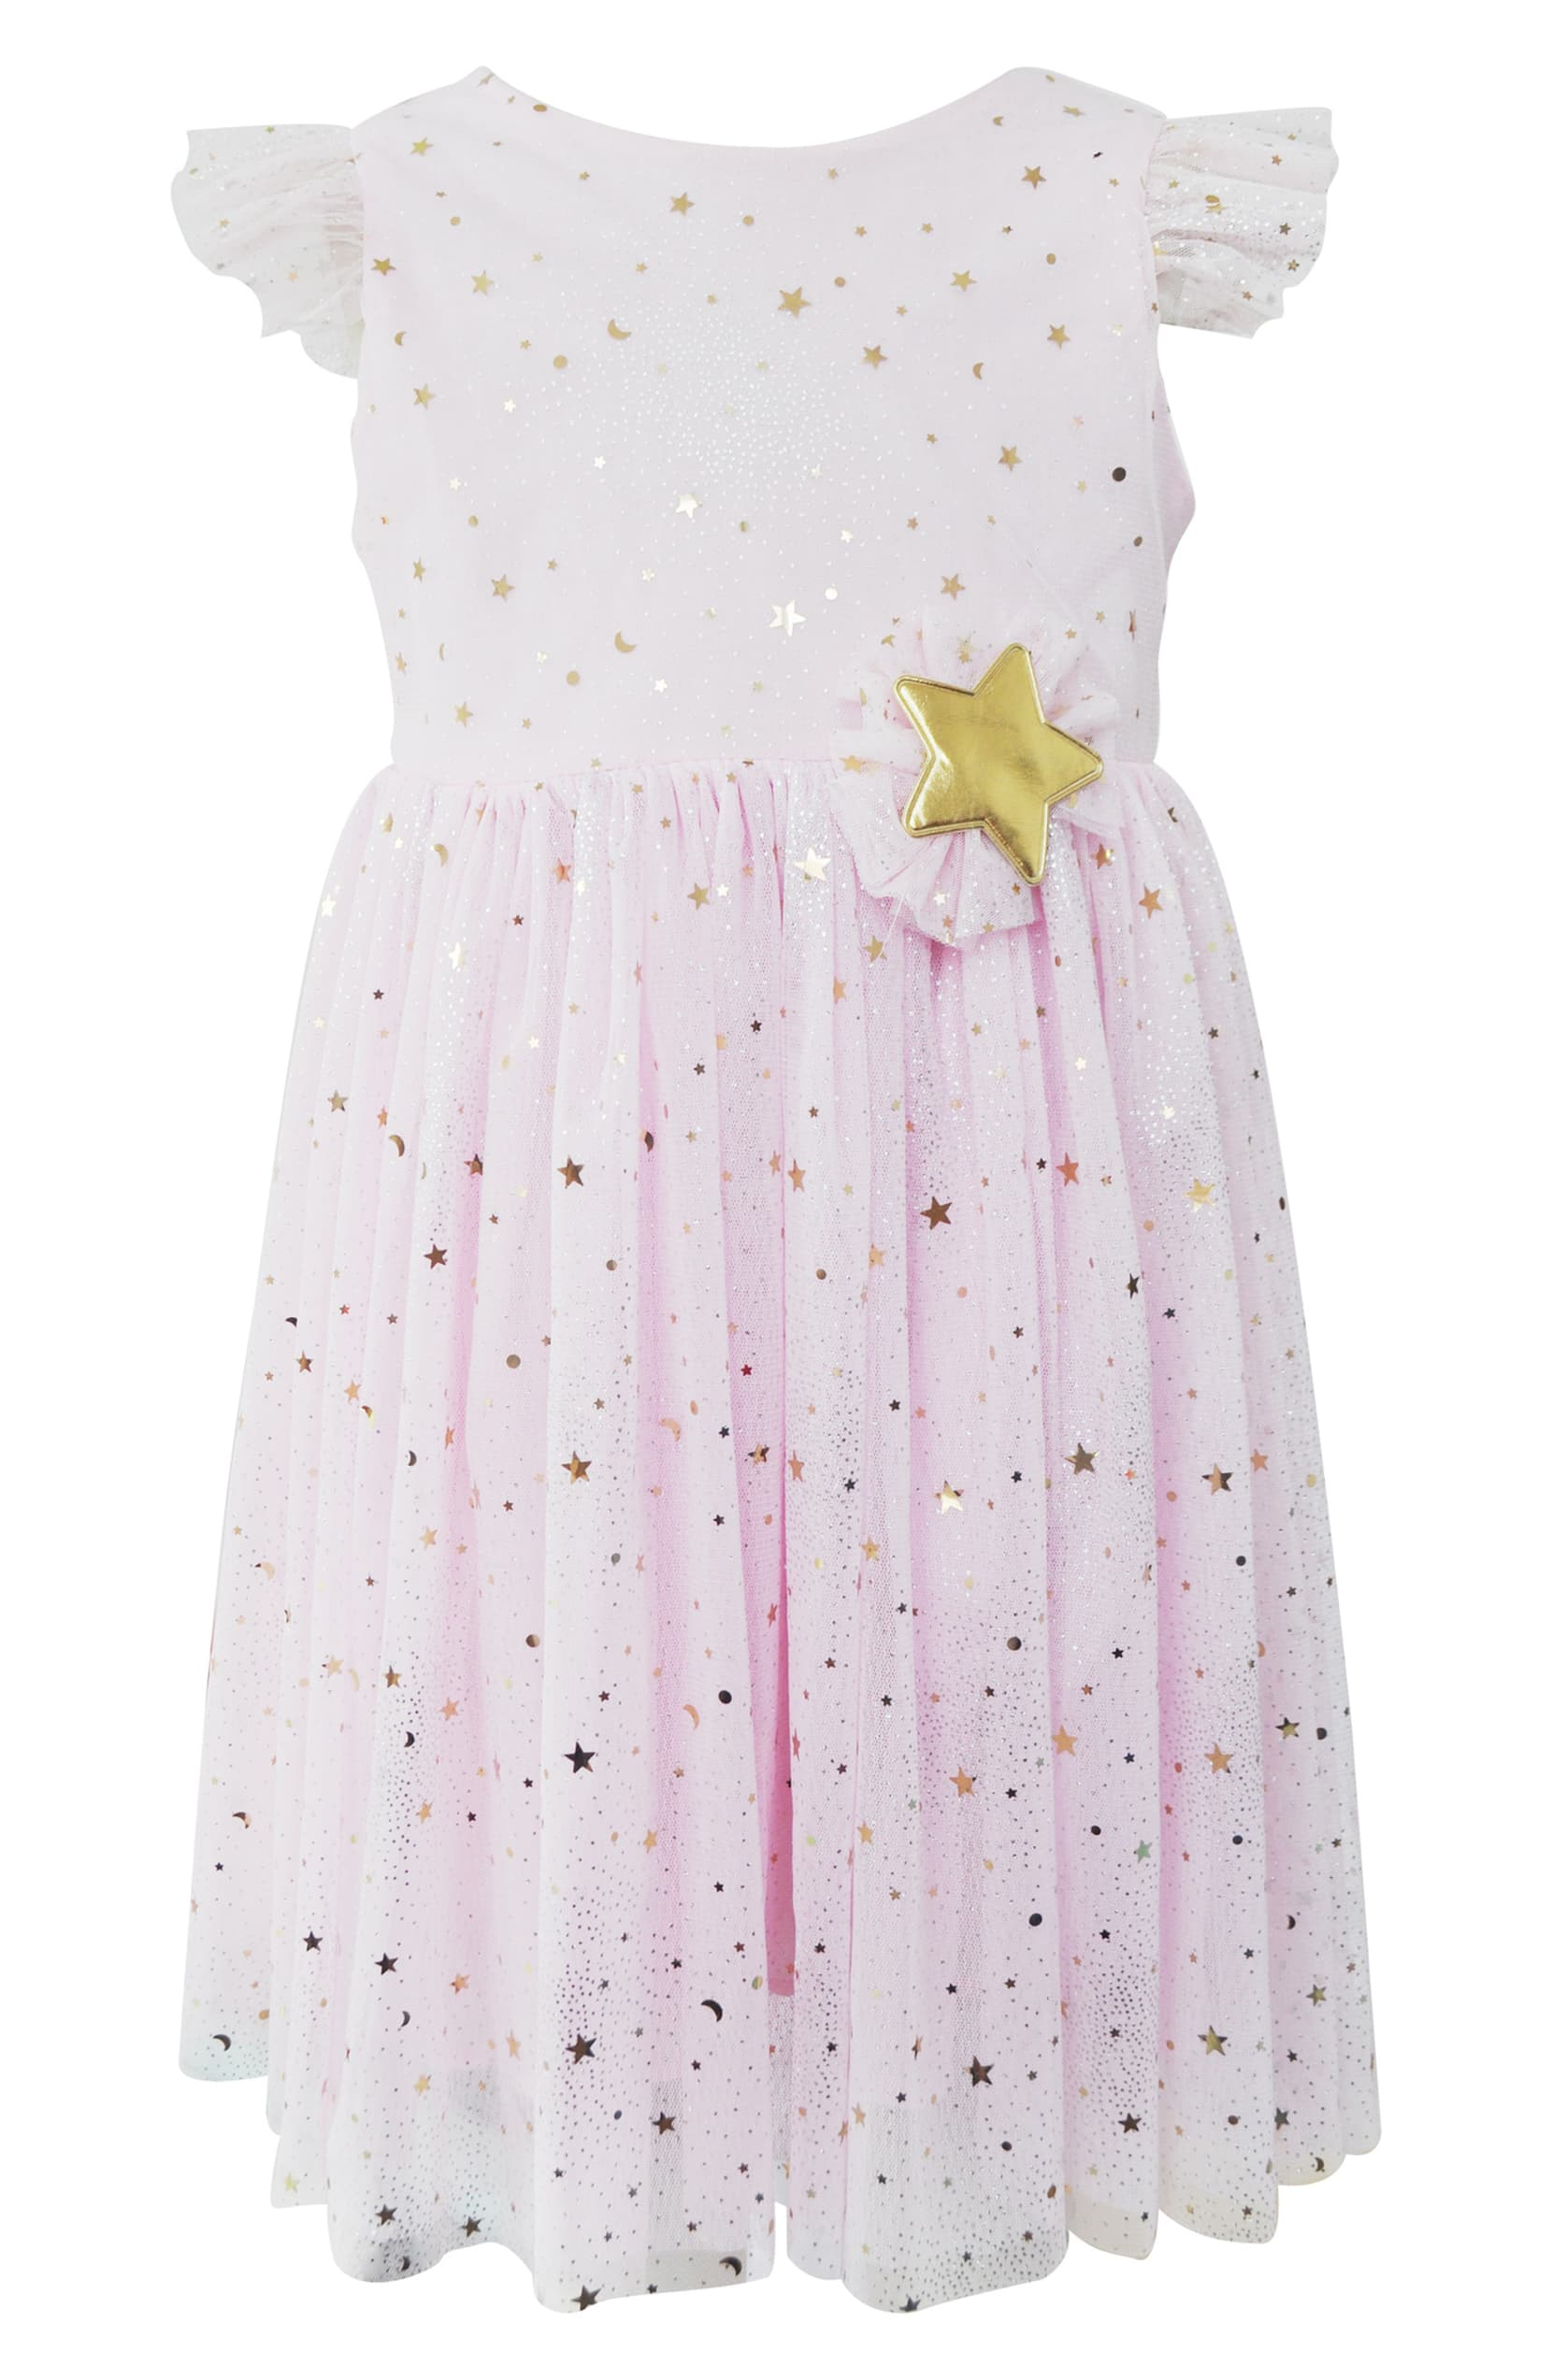 Popatu Metallic Moon Star Tulle Dress